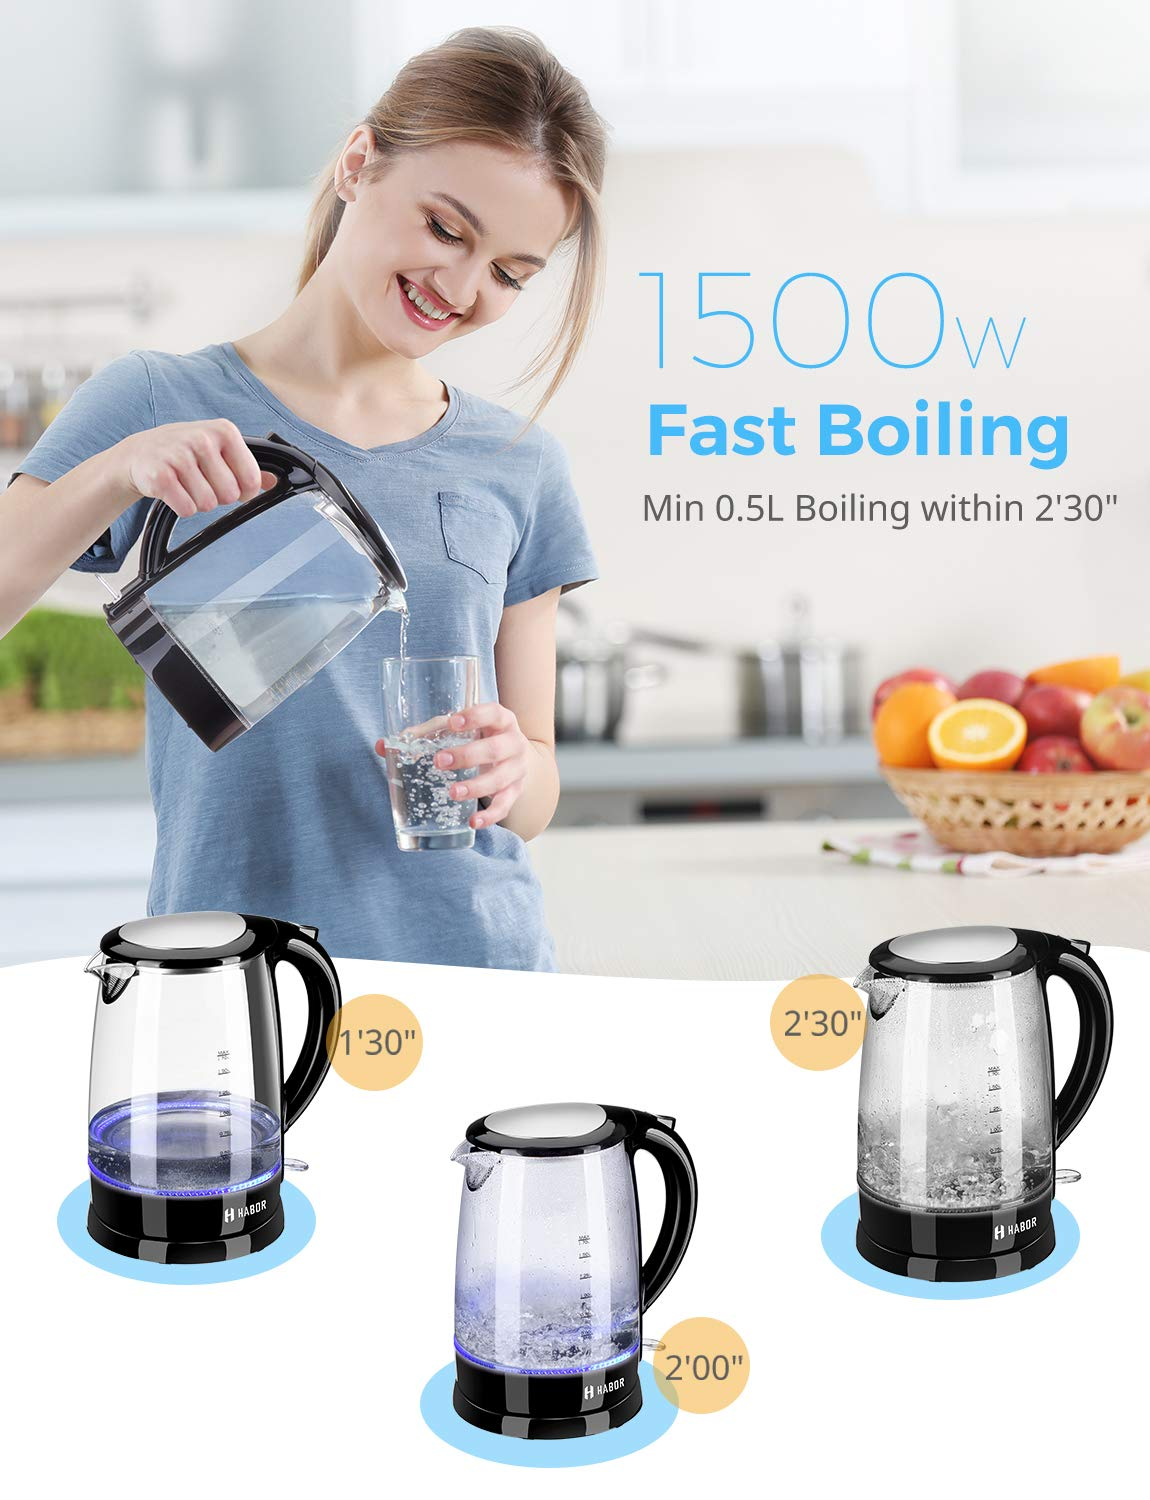 Habor Electric kettle, Water Boiler 1500W Fast Heating Tea Pot, 1.8 Quart (1.7 L) Blue LED Lights Bright Glass Body, Auto Shut-Off Boil-Dry Protection Stainless Steel Inner Lip by Habor (Image #2)